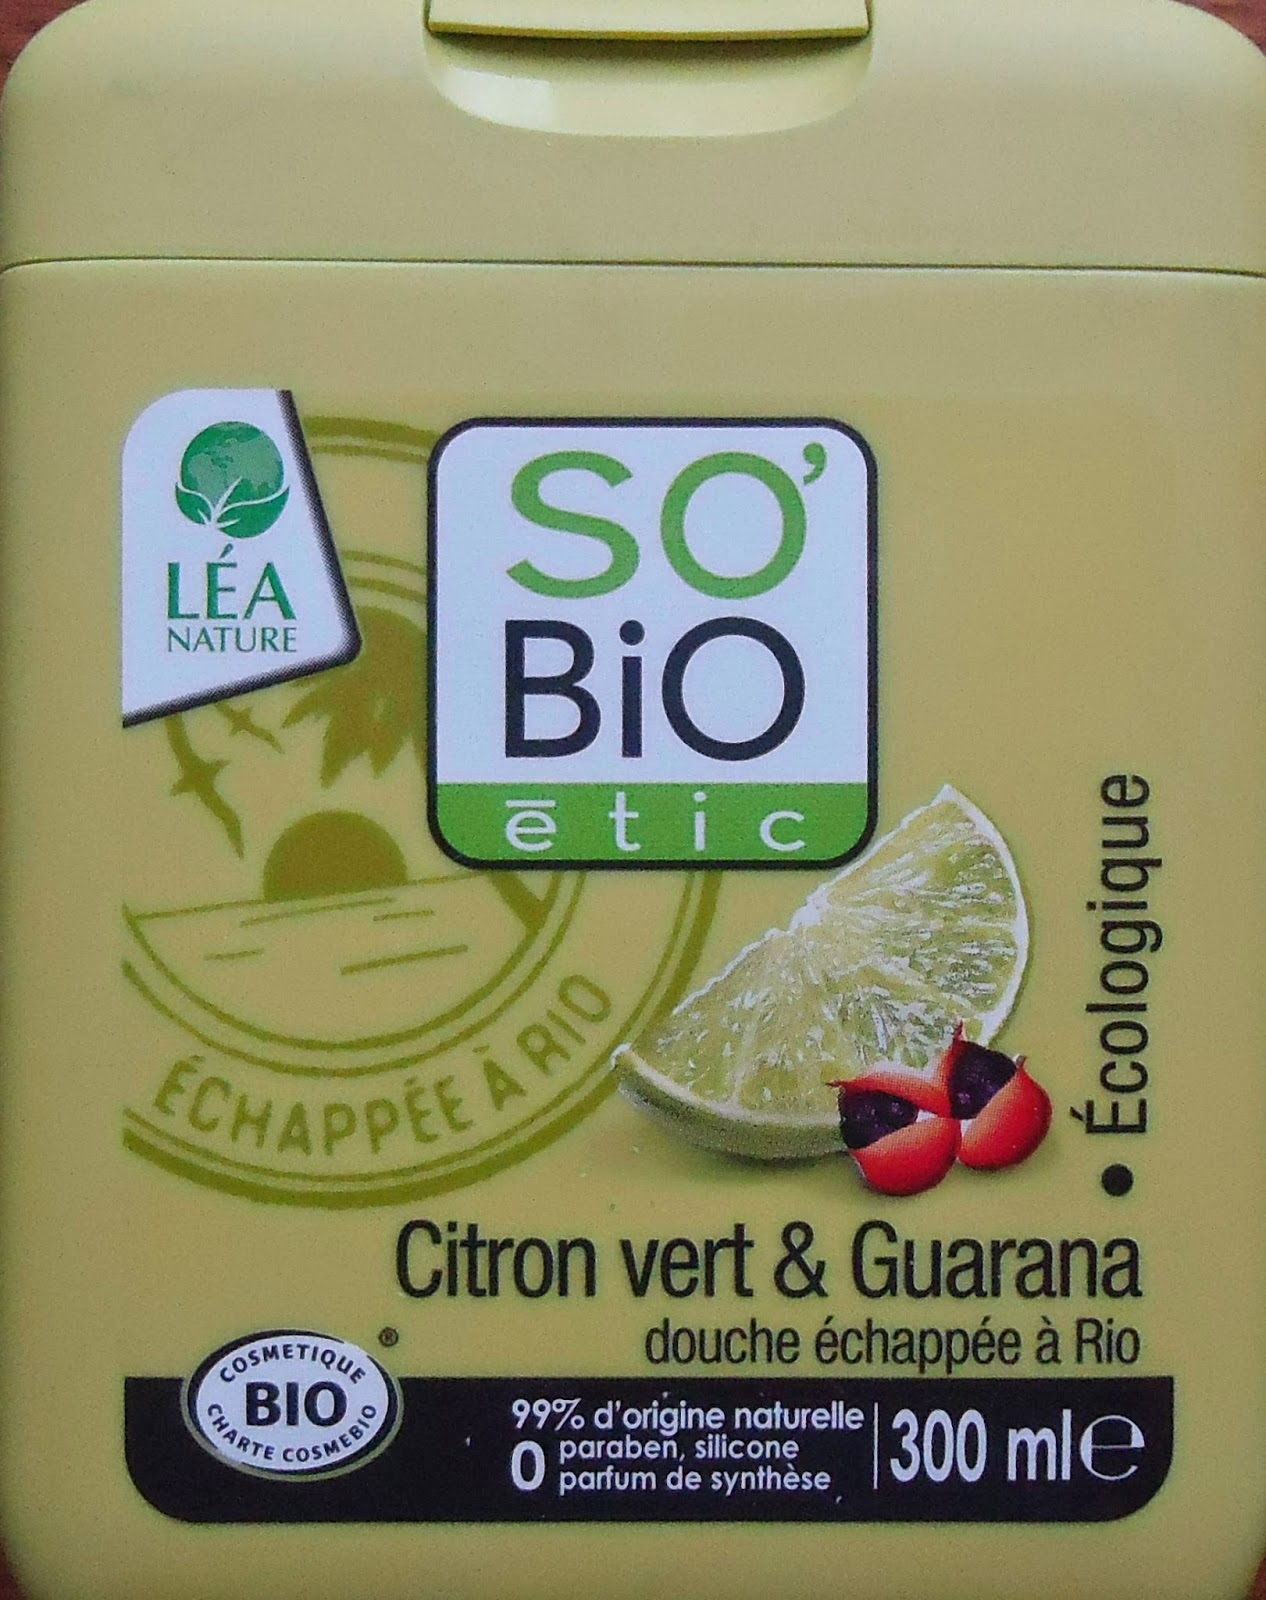 gel douche citron vert et guarana so bio étic